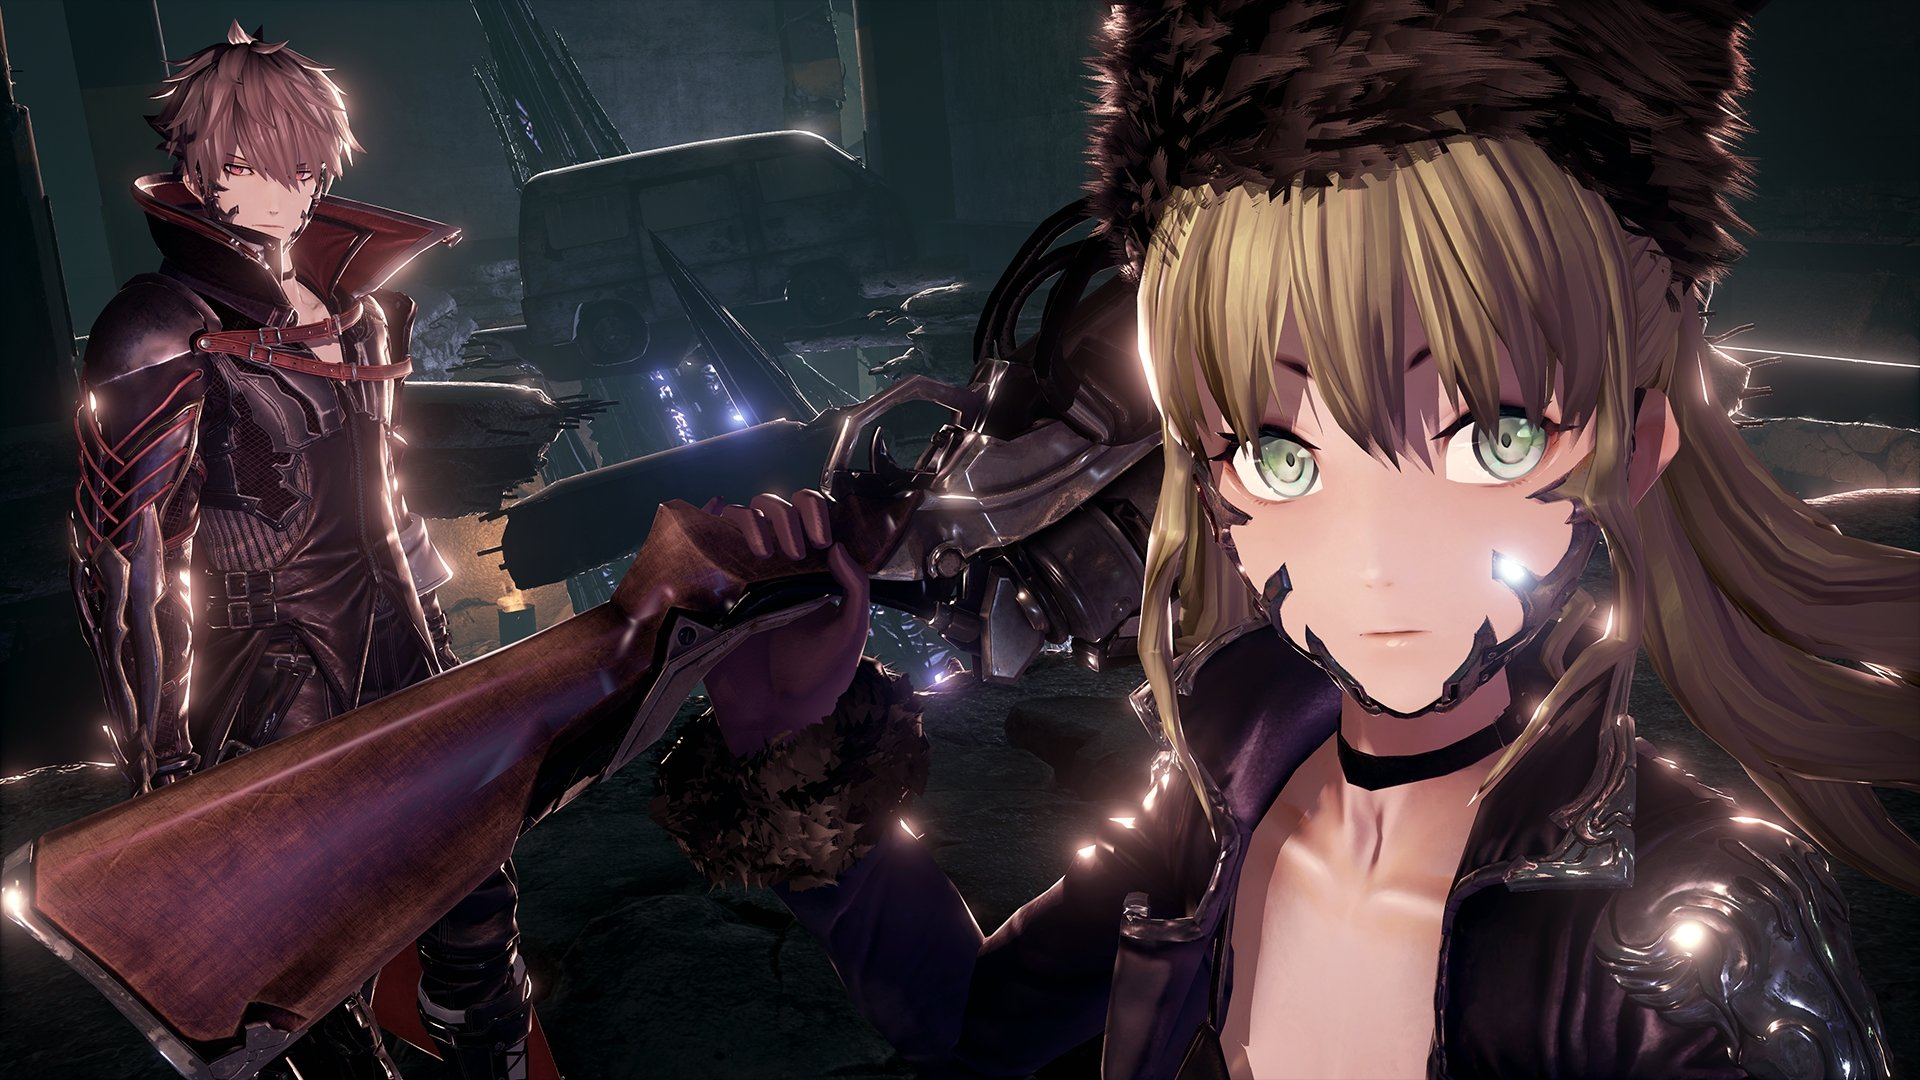 Code Vein photos surface, has a rad gothic anime style screenshot